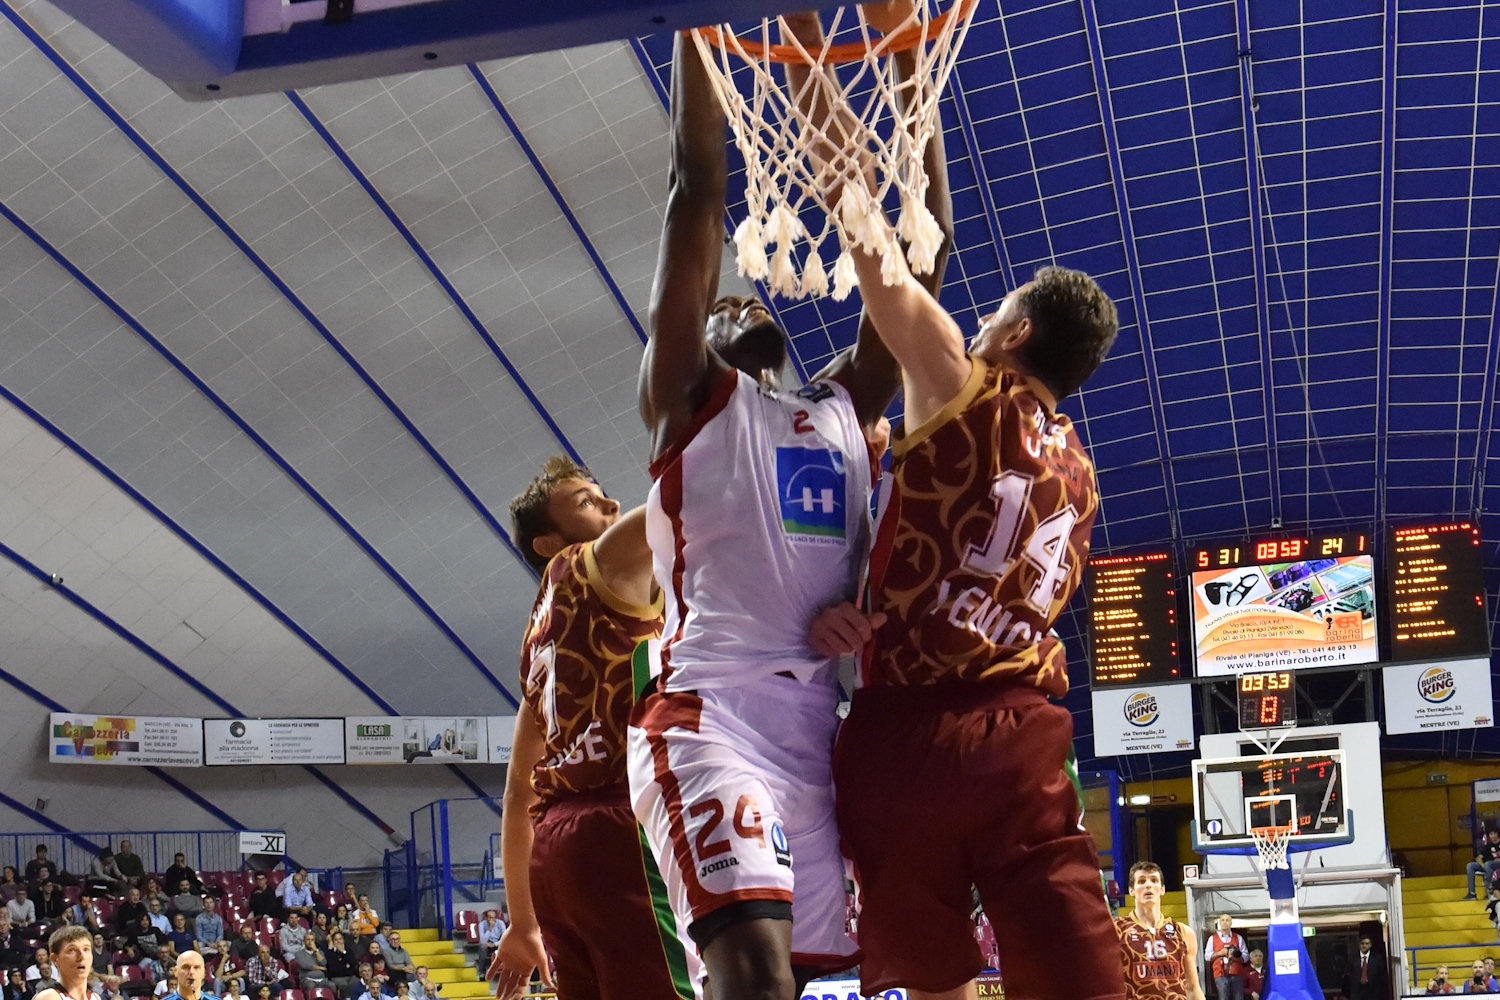 Kevin Tumba - Proximus Spirou Charleroi - EC15 (photo Reyer Venice)